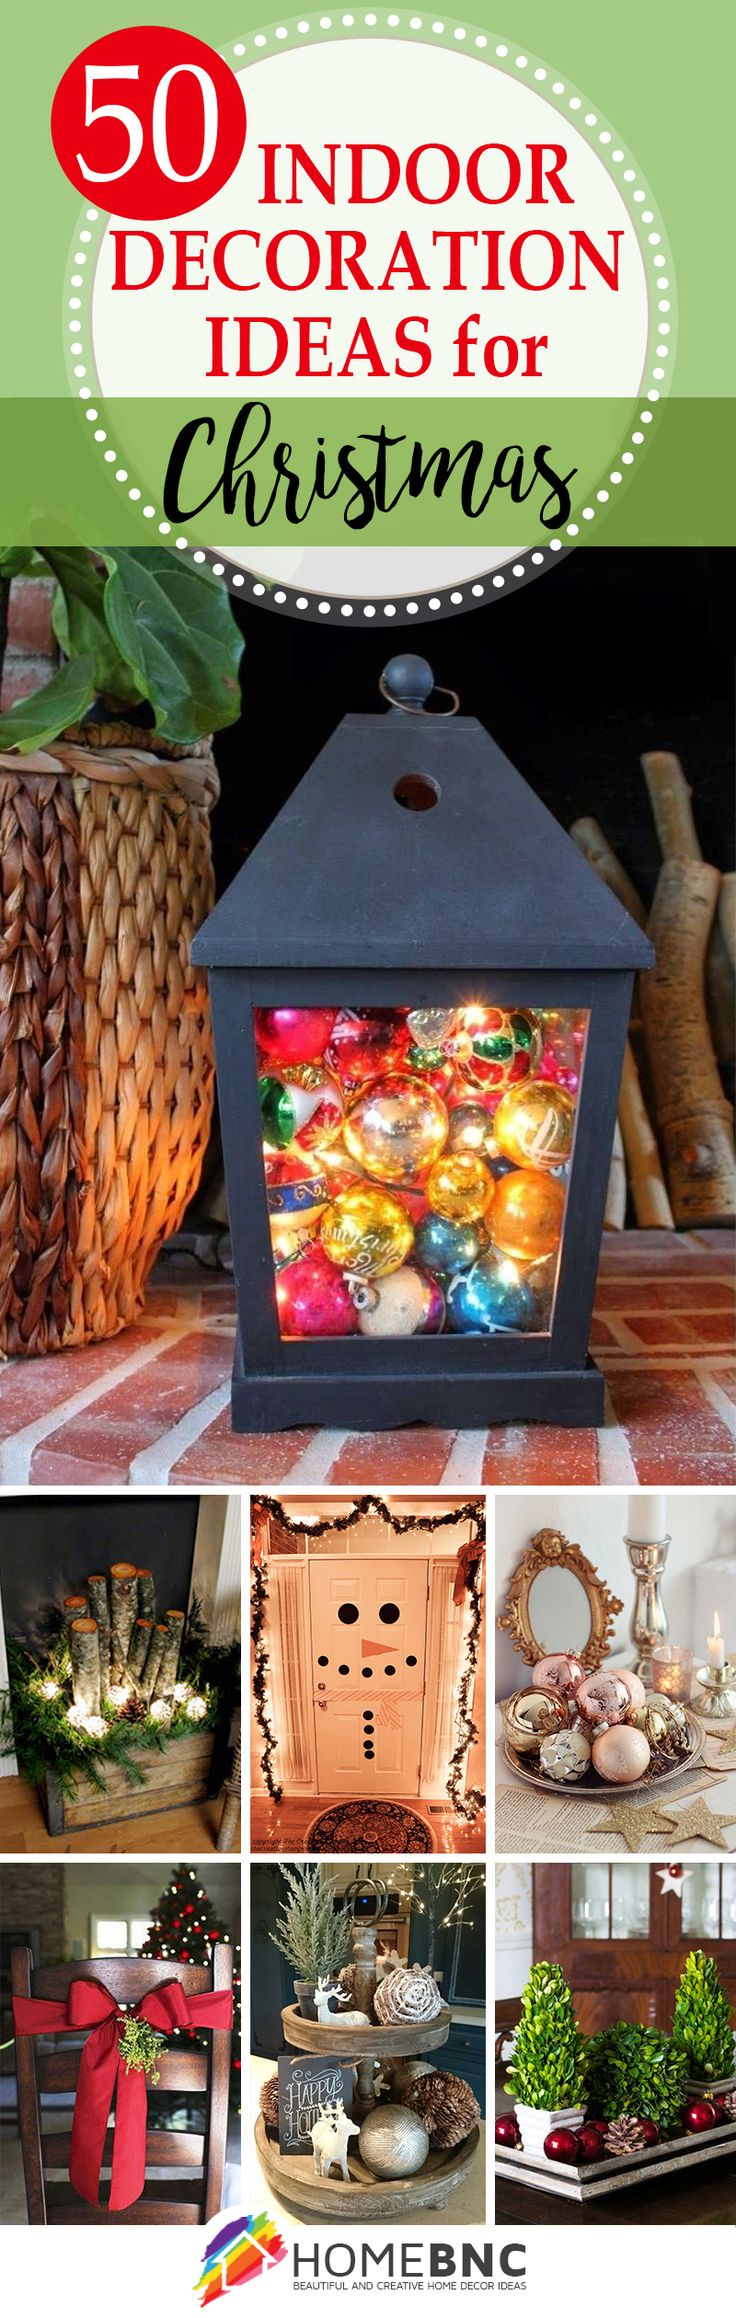 Indoor Christmas Decorations Ideas best 25+ cheap christmas decorations ideas on pinterest | cheap